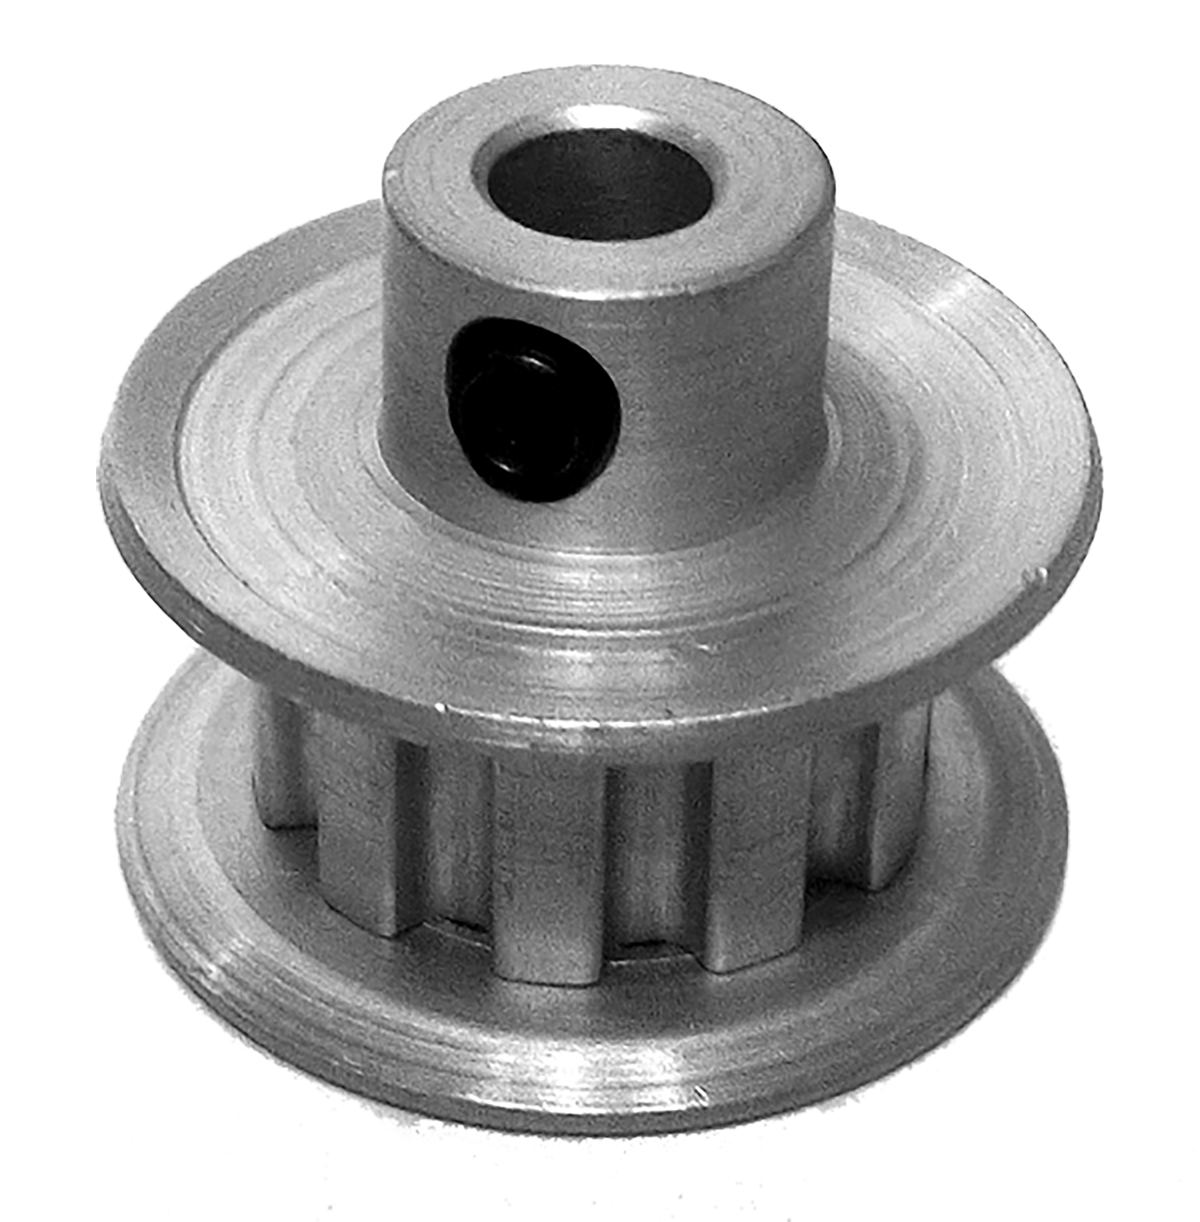 30XL025M6FA8 - Aluminum Metric Pulleys